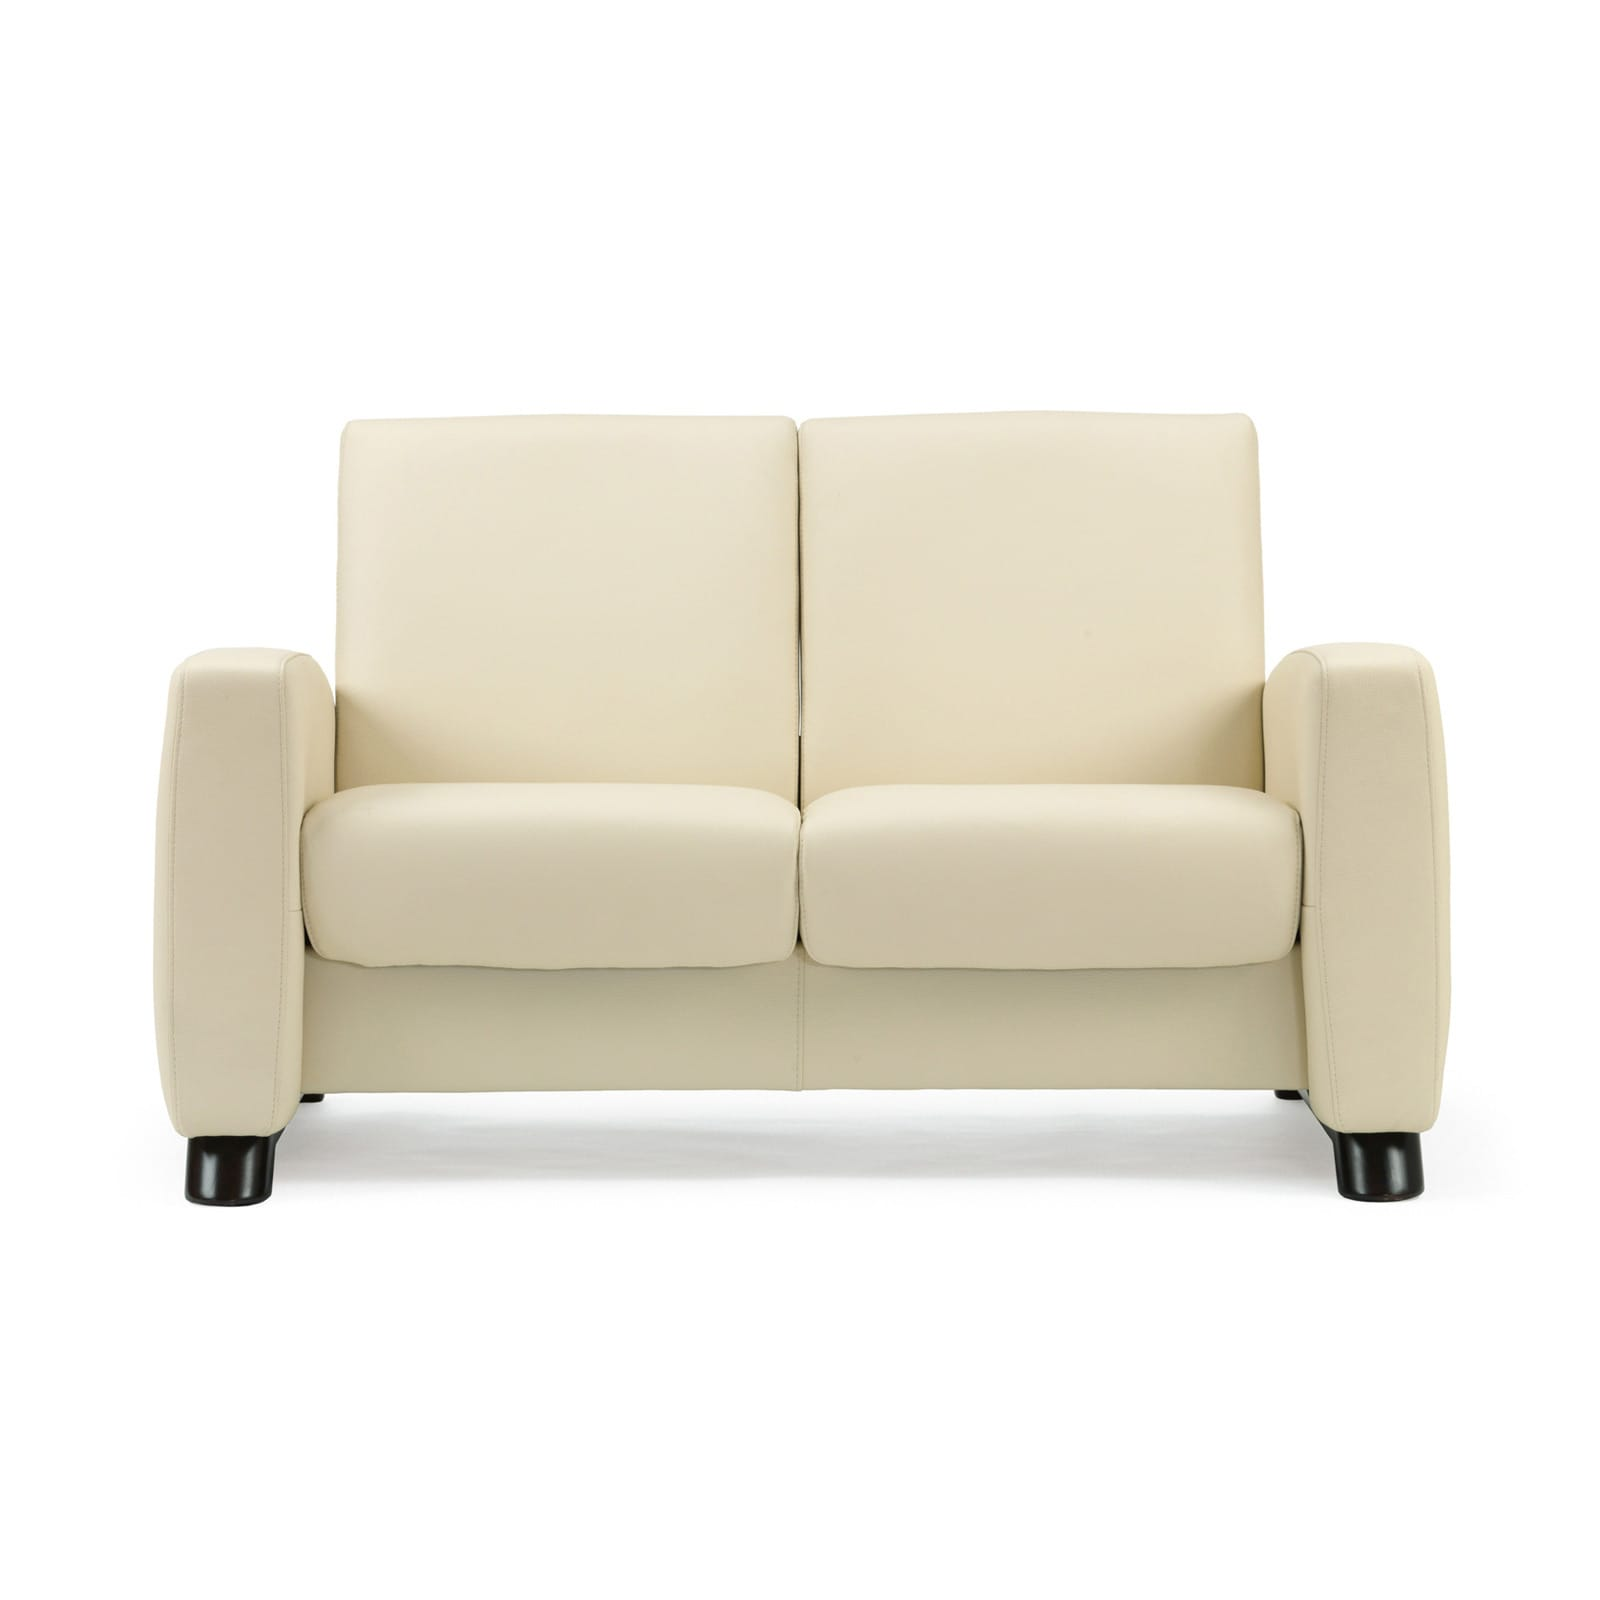 relaxsofa 2 sitzer florence knoll relax 2 sitzer sofa. Black Bedroom Furniture Sets. Home Design Ideas